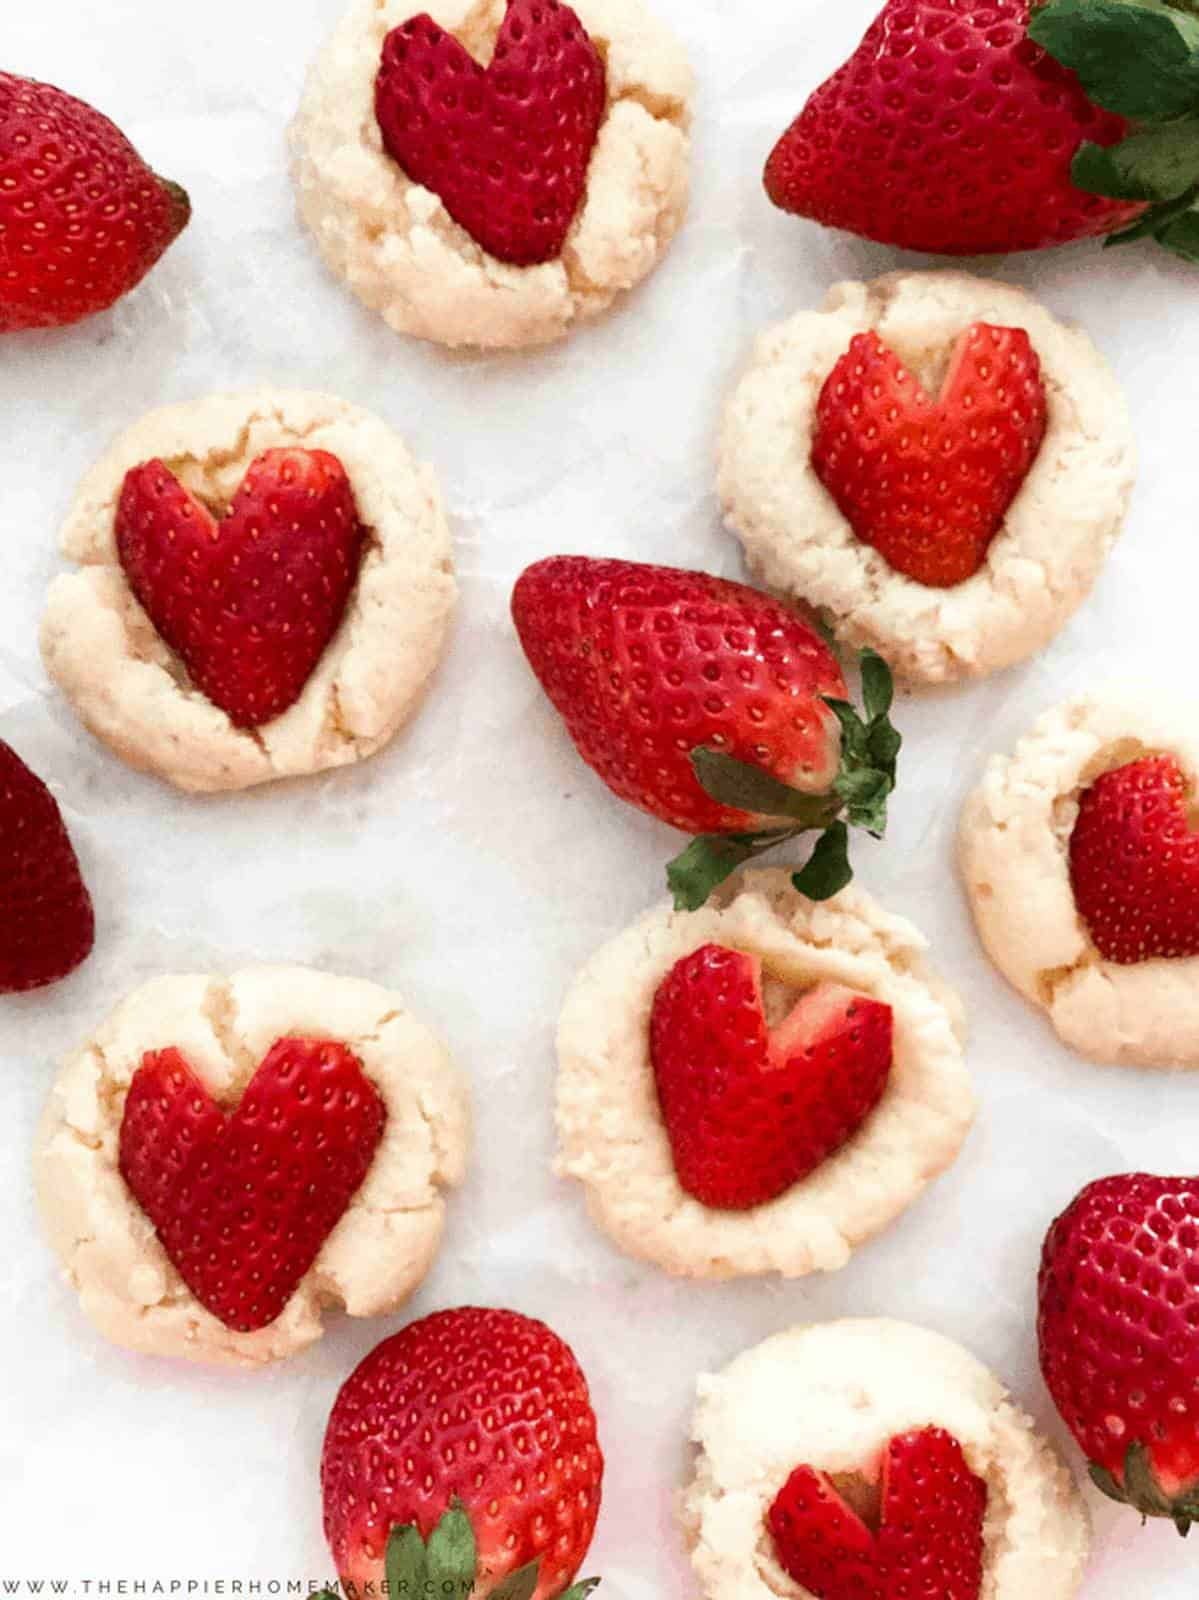 Strawberry Cheesecake Cookie Recipe - Easy, delicious light and fluffy cookies with a creamy center, topped with a heart shaped strawberry. Perfect Valentine's Day dessert recipe!